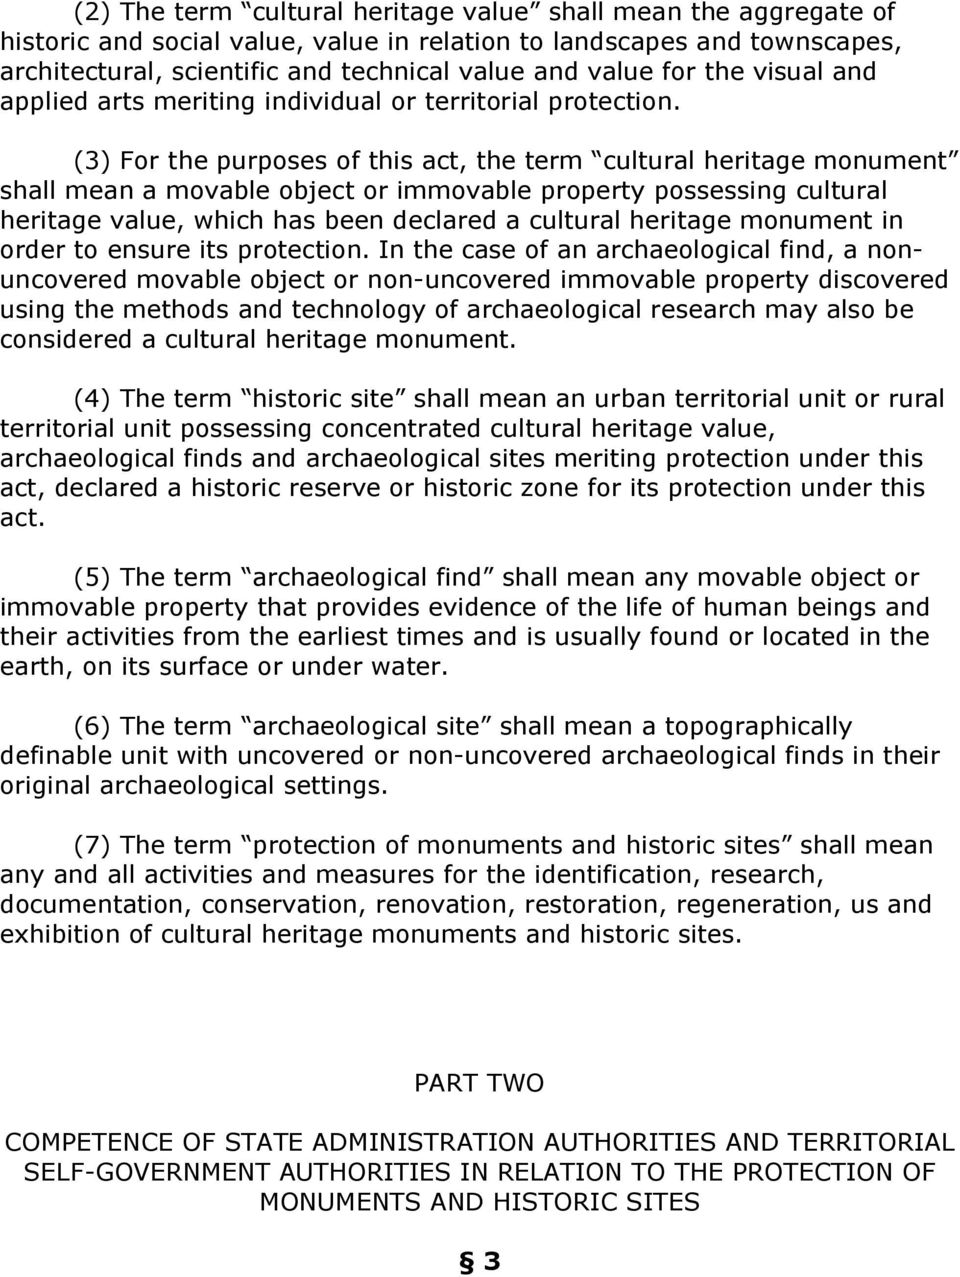 (3) For the purposes of this act, the term cultural heritage monument shall mean a movable object or immovable property possessing cultural heritage value, which has been declared a cultural heritage